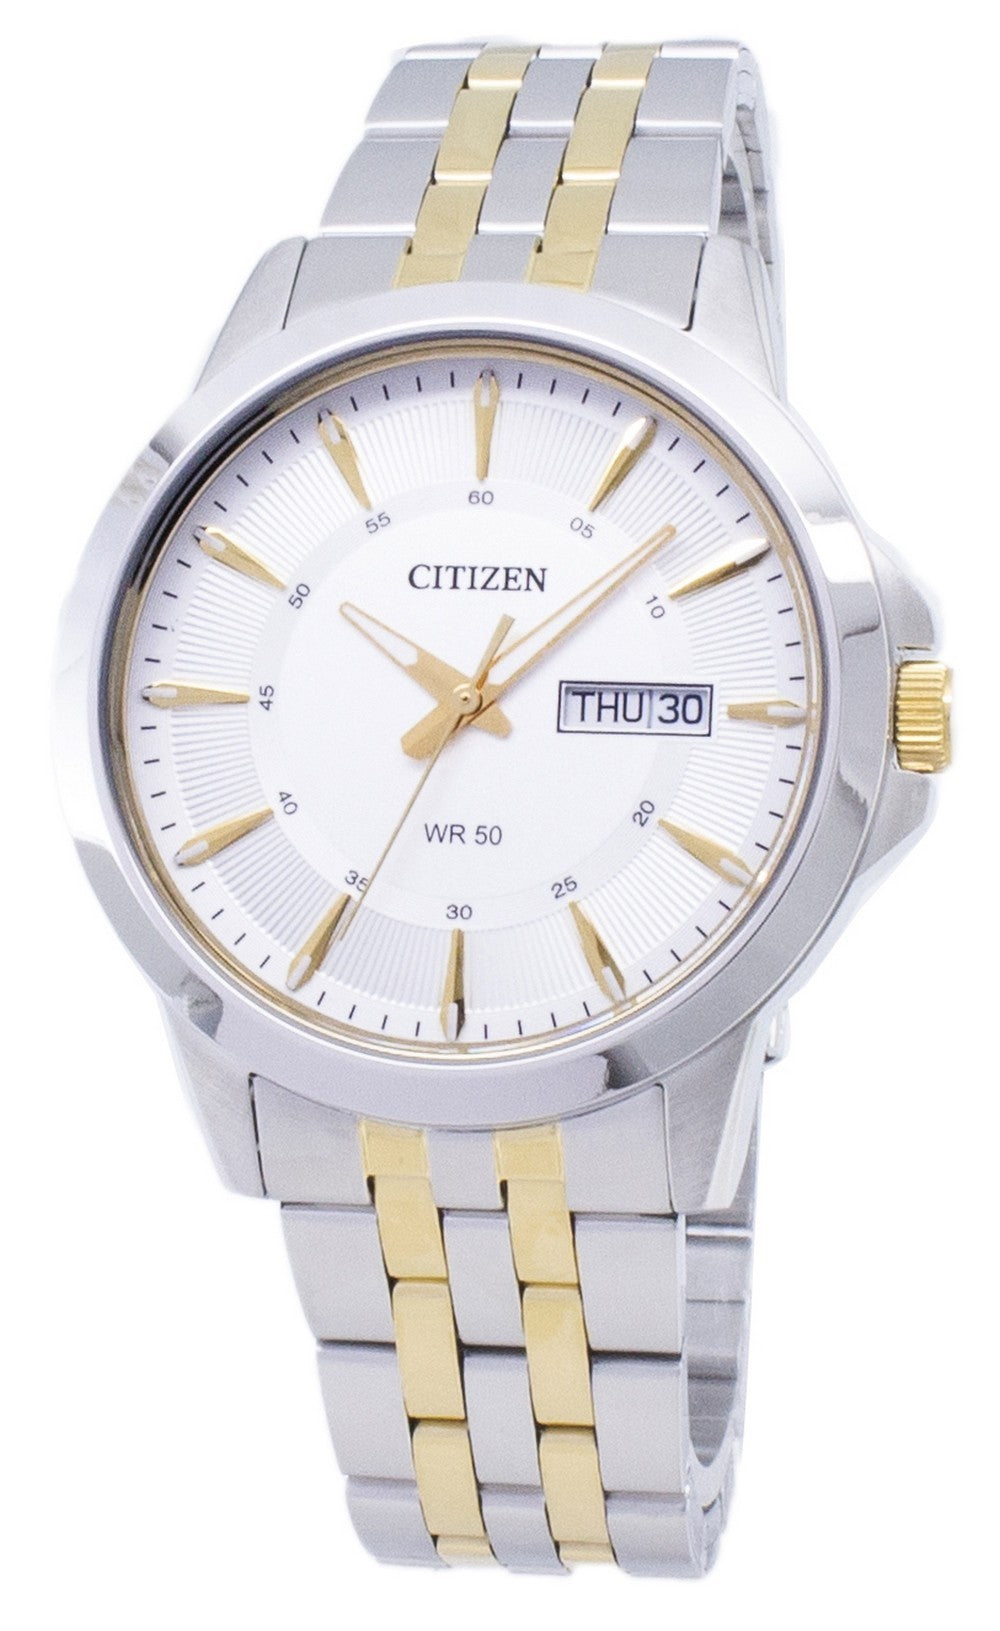 Citizen Quartz Bf2018-52a Analog Men's Watch